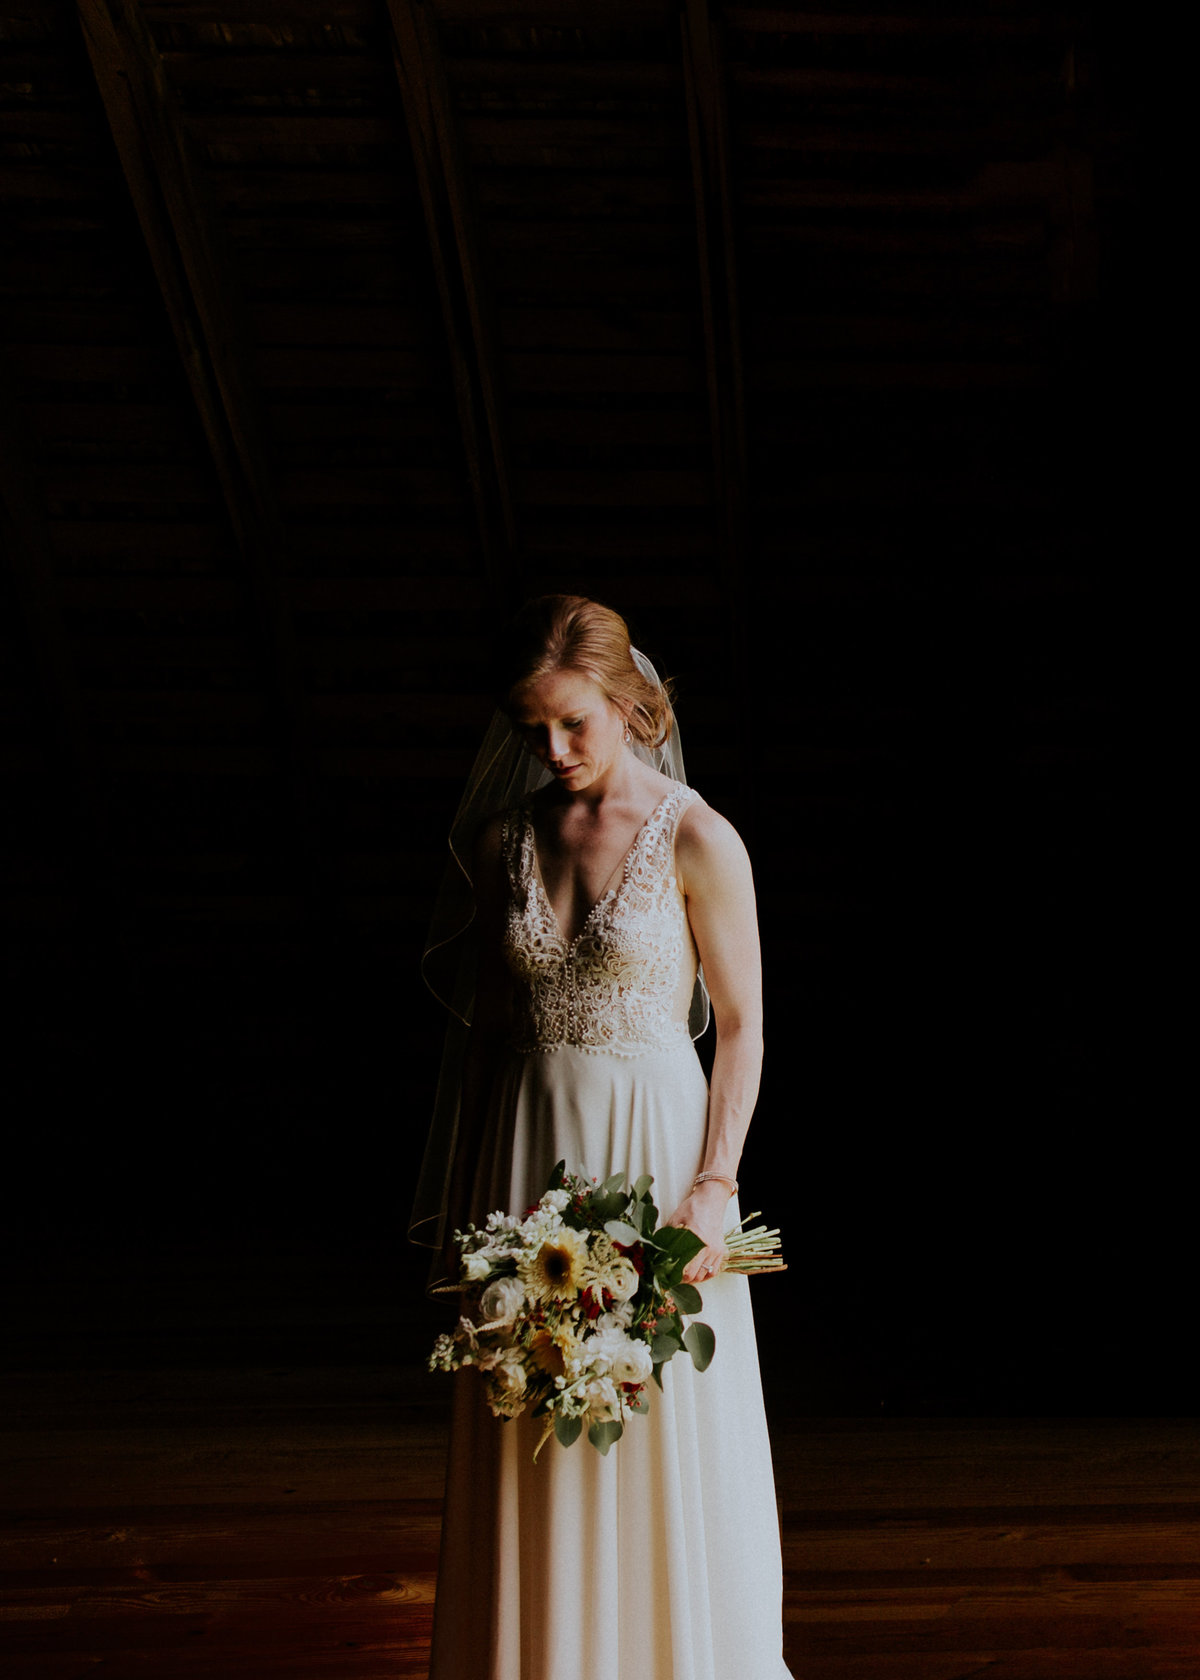 A bride and her bouquet in a barn